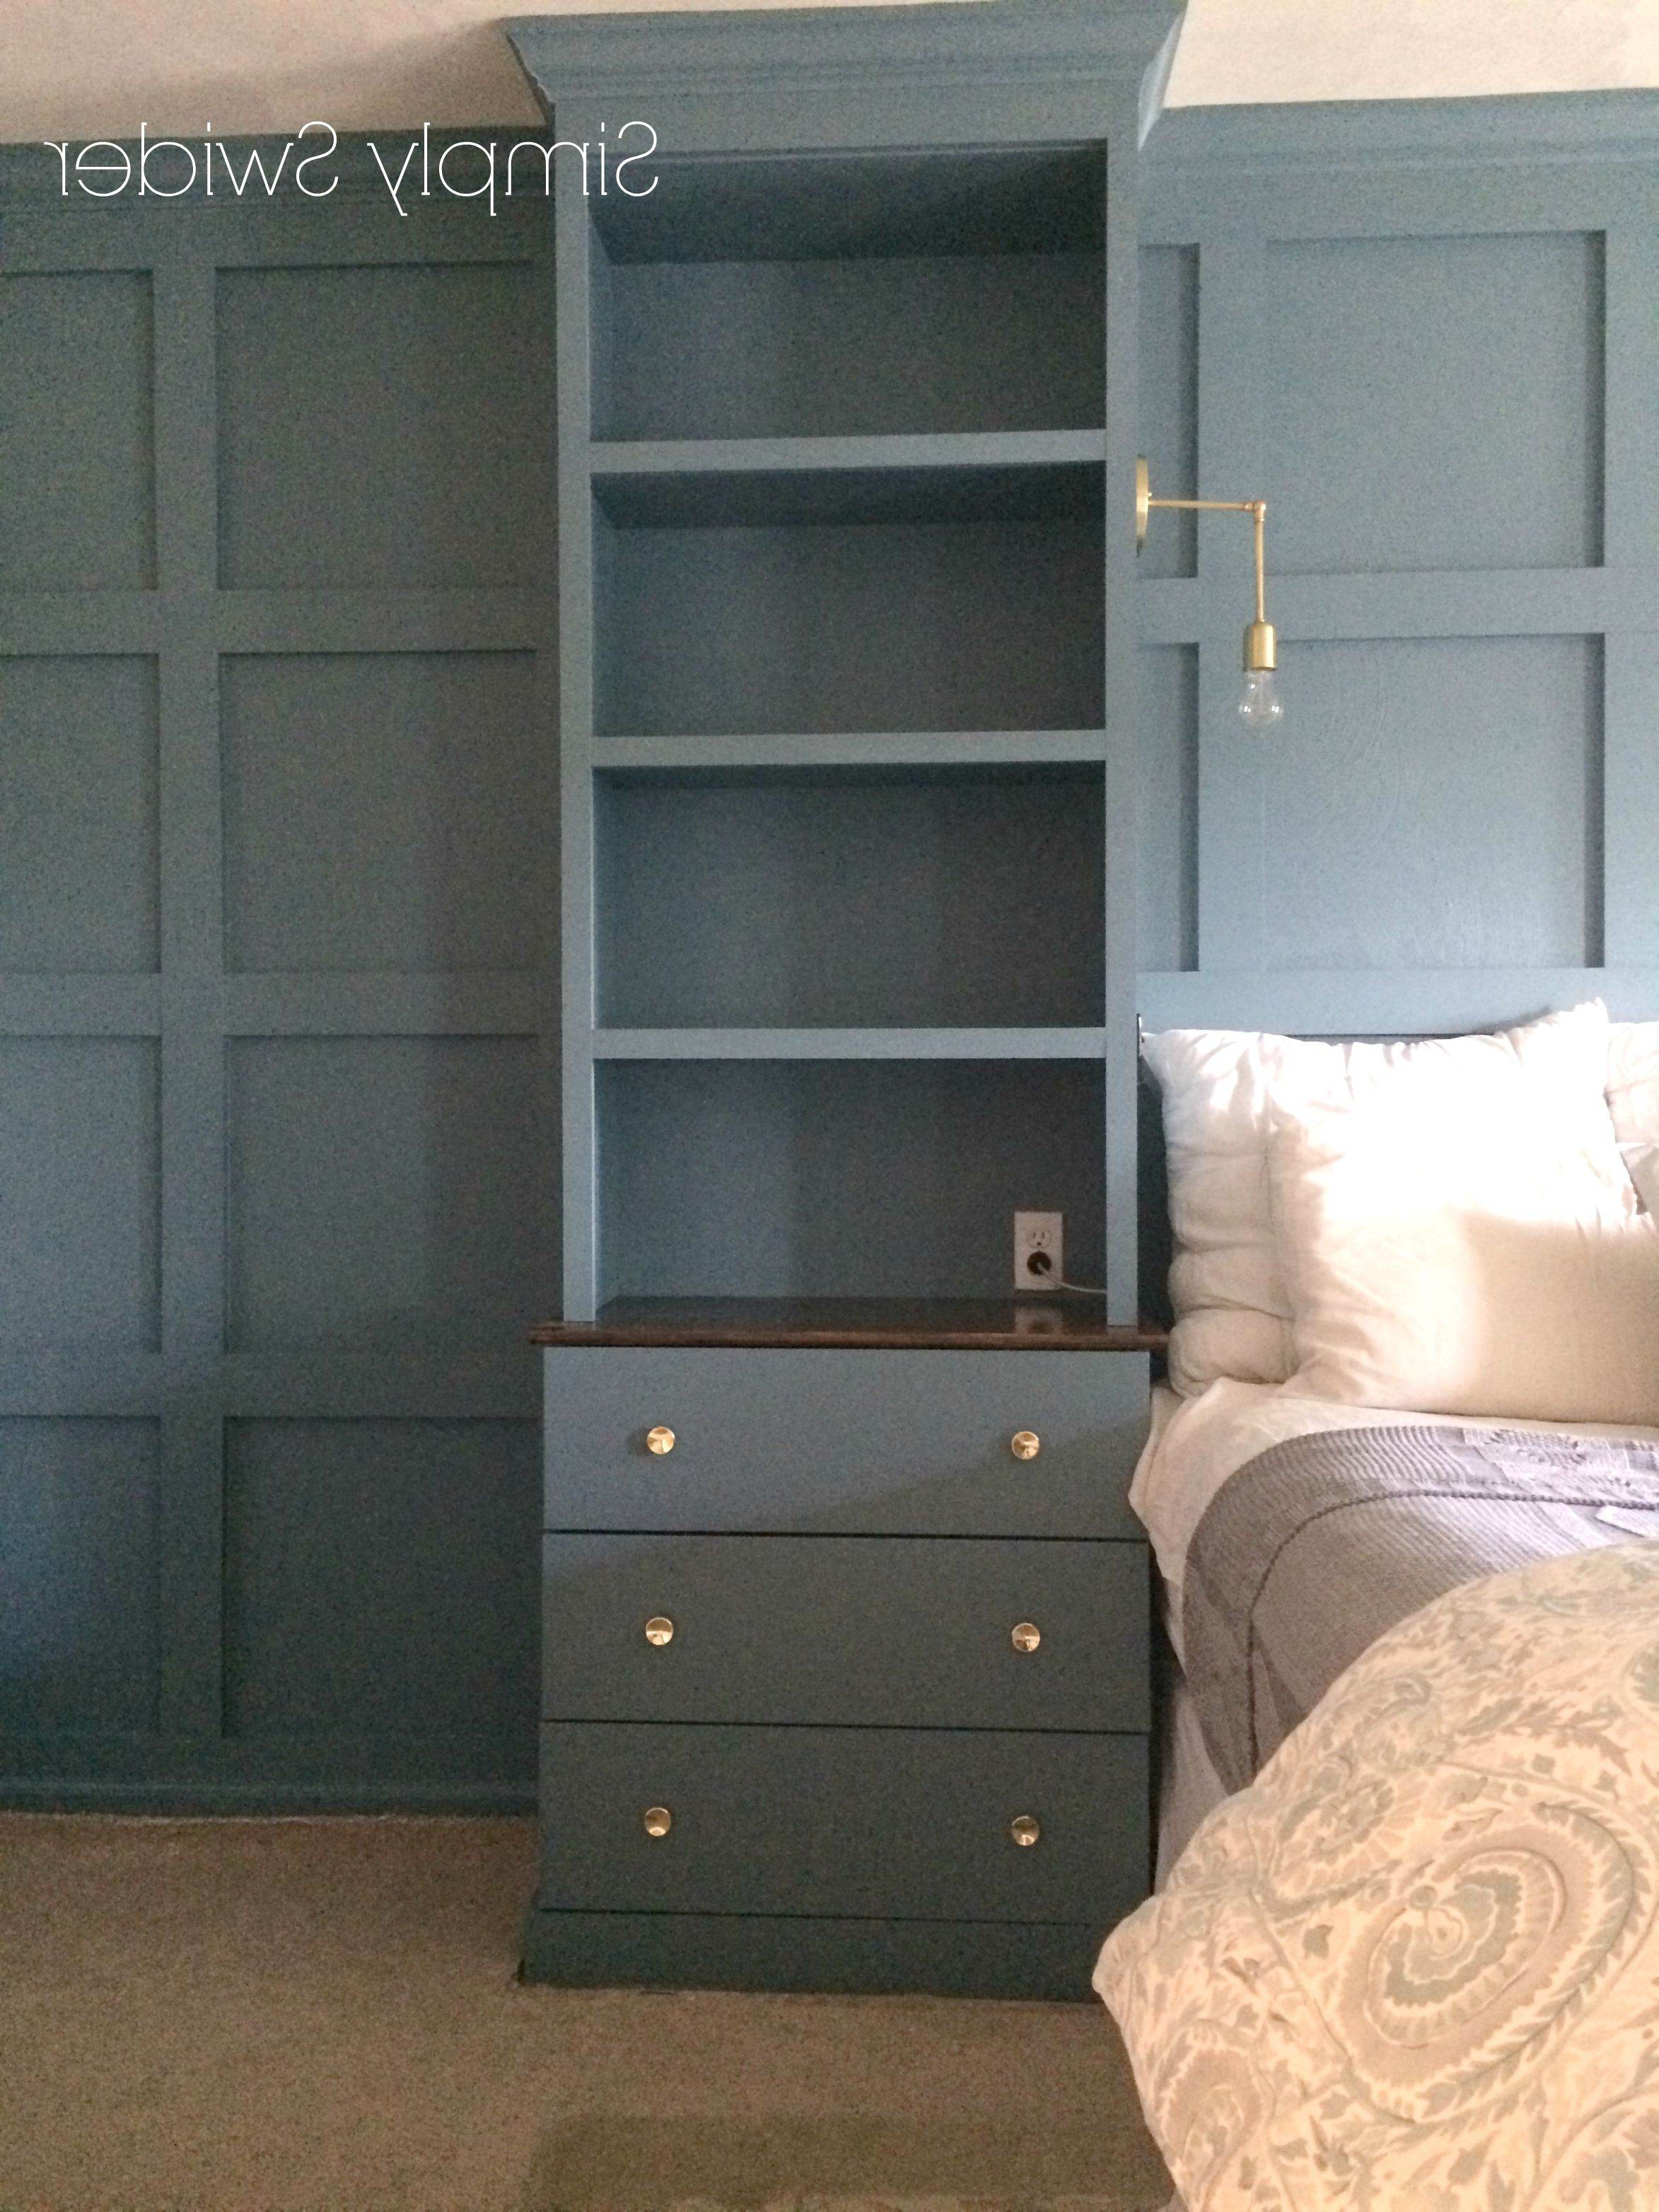 new build built a in wardrobe fantastic diy design pics wardrobes